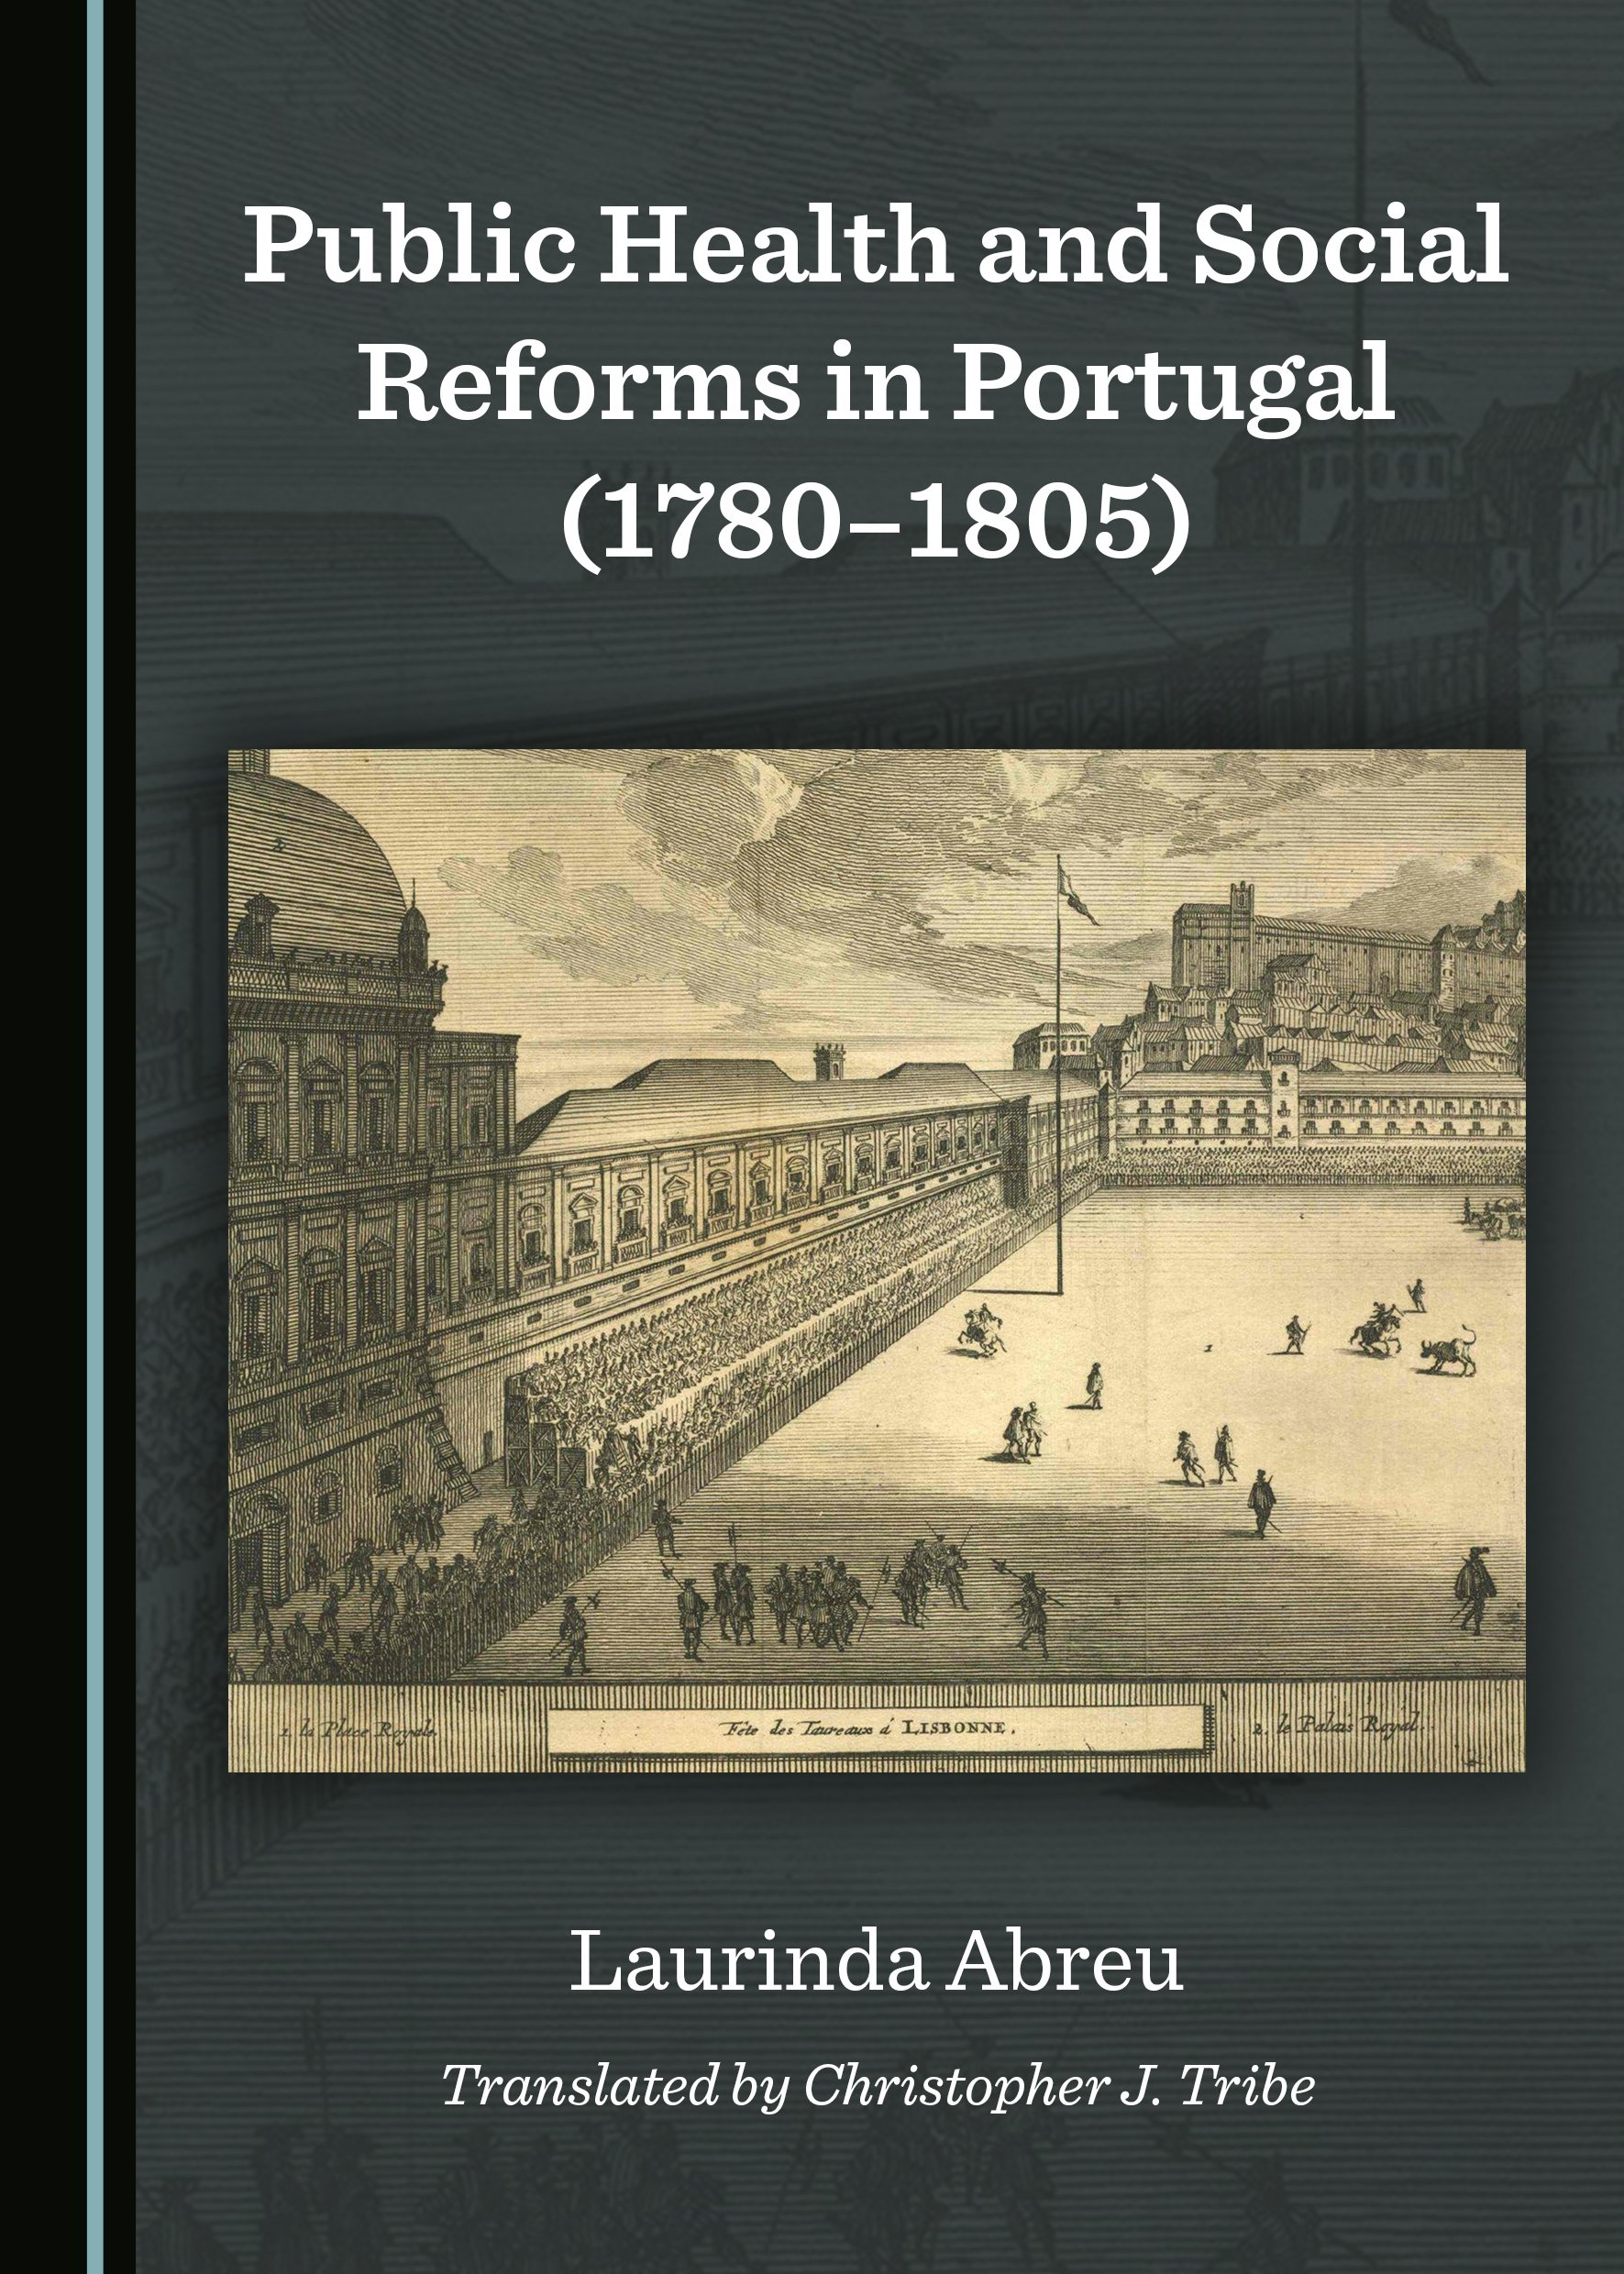 Public Health and Social Reforms in Portugal (1780-1805)